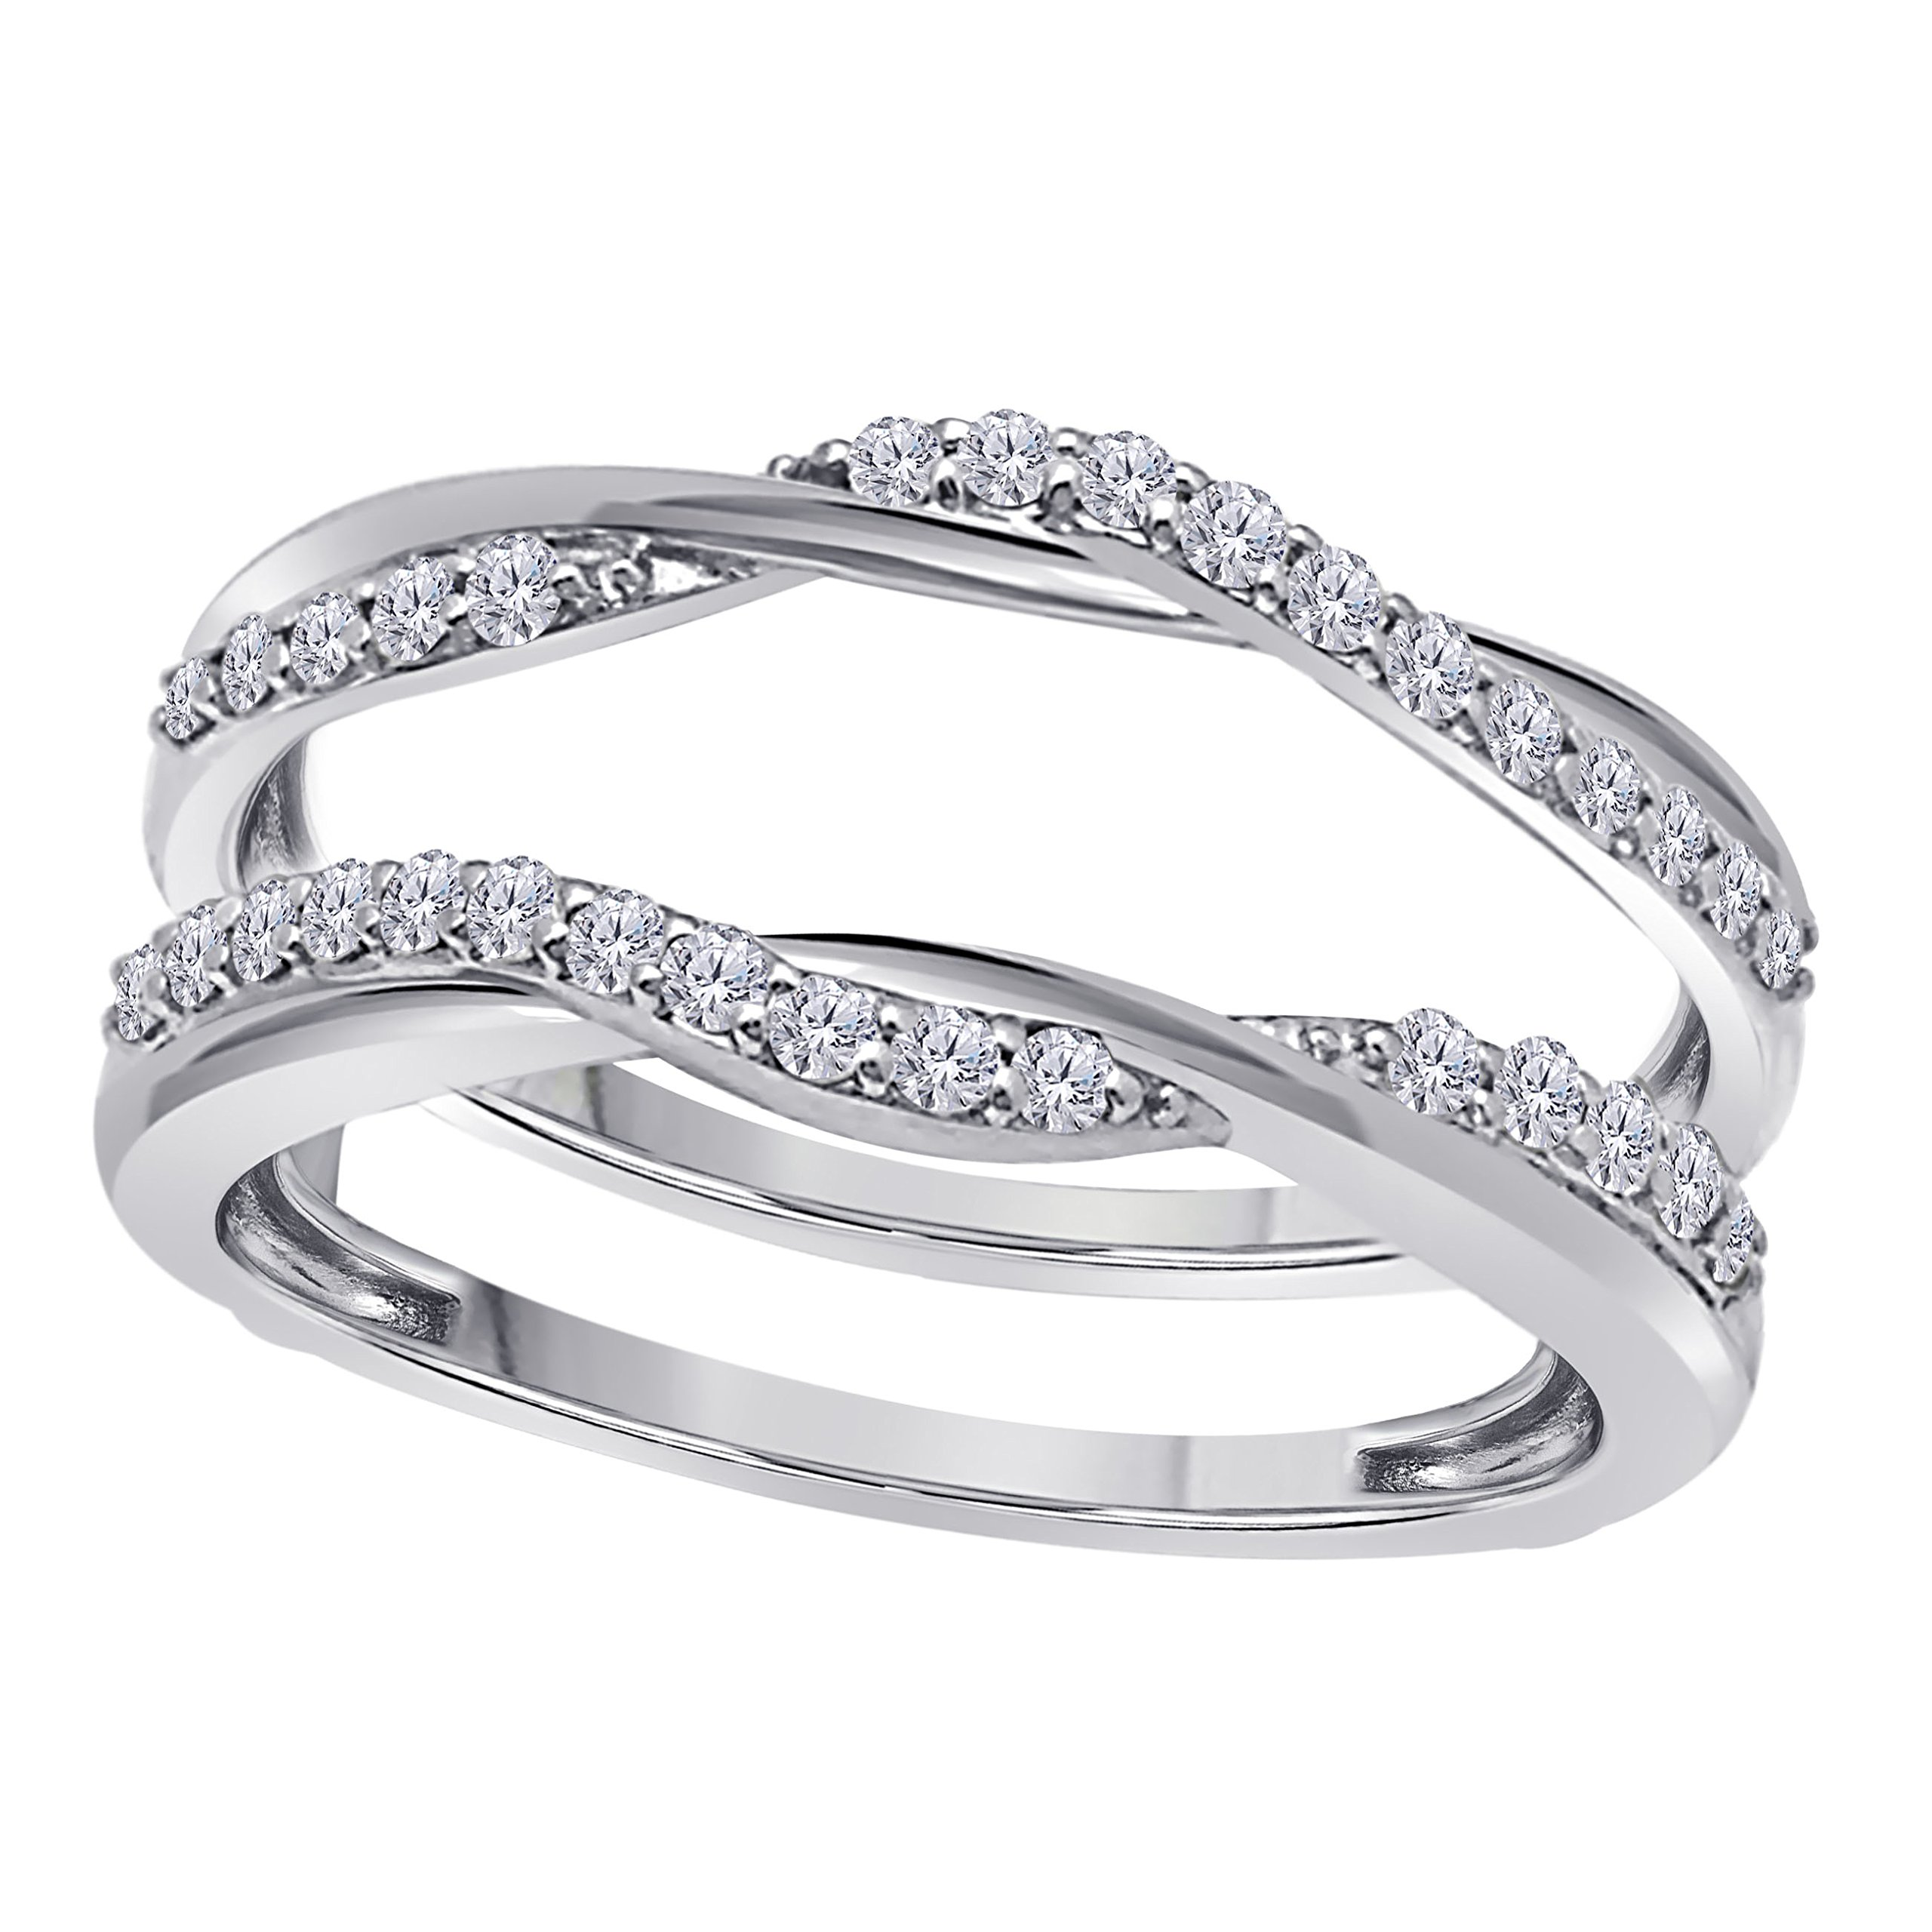 Sterling Silver Plated Delicate Bypass Infinity Style Vintage Wedding Ring Guard Enhancer with Cubic Zirconia (0.50 ct. tw.)